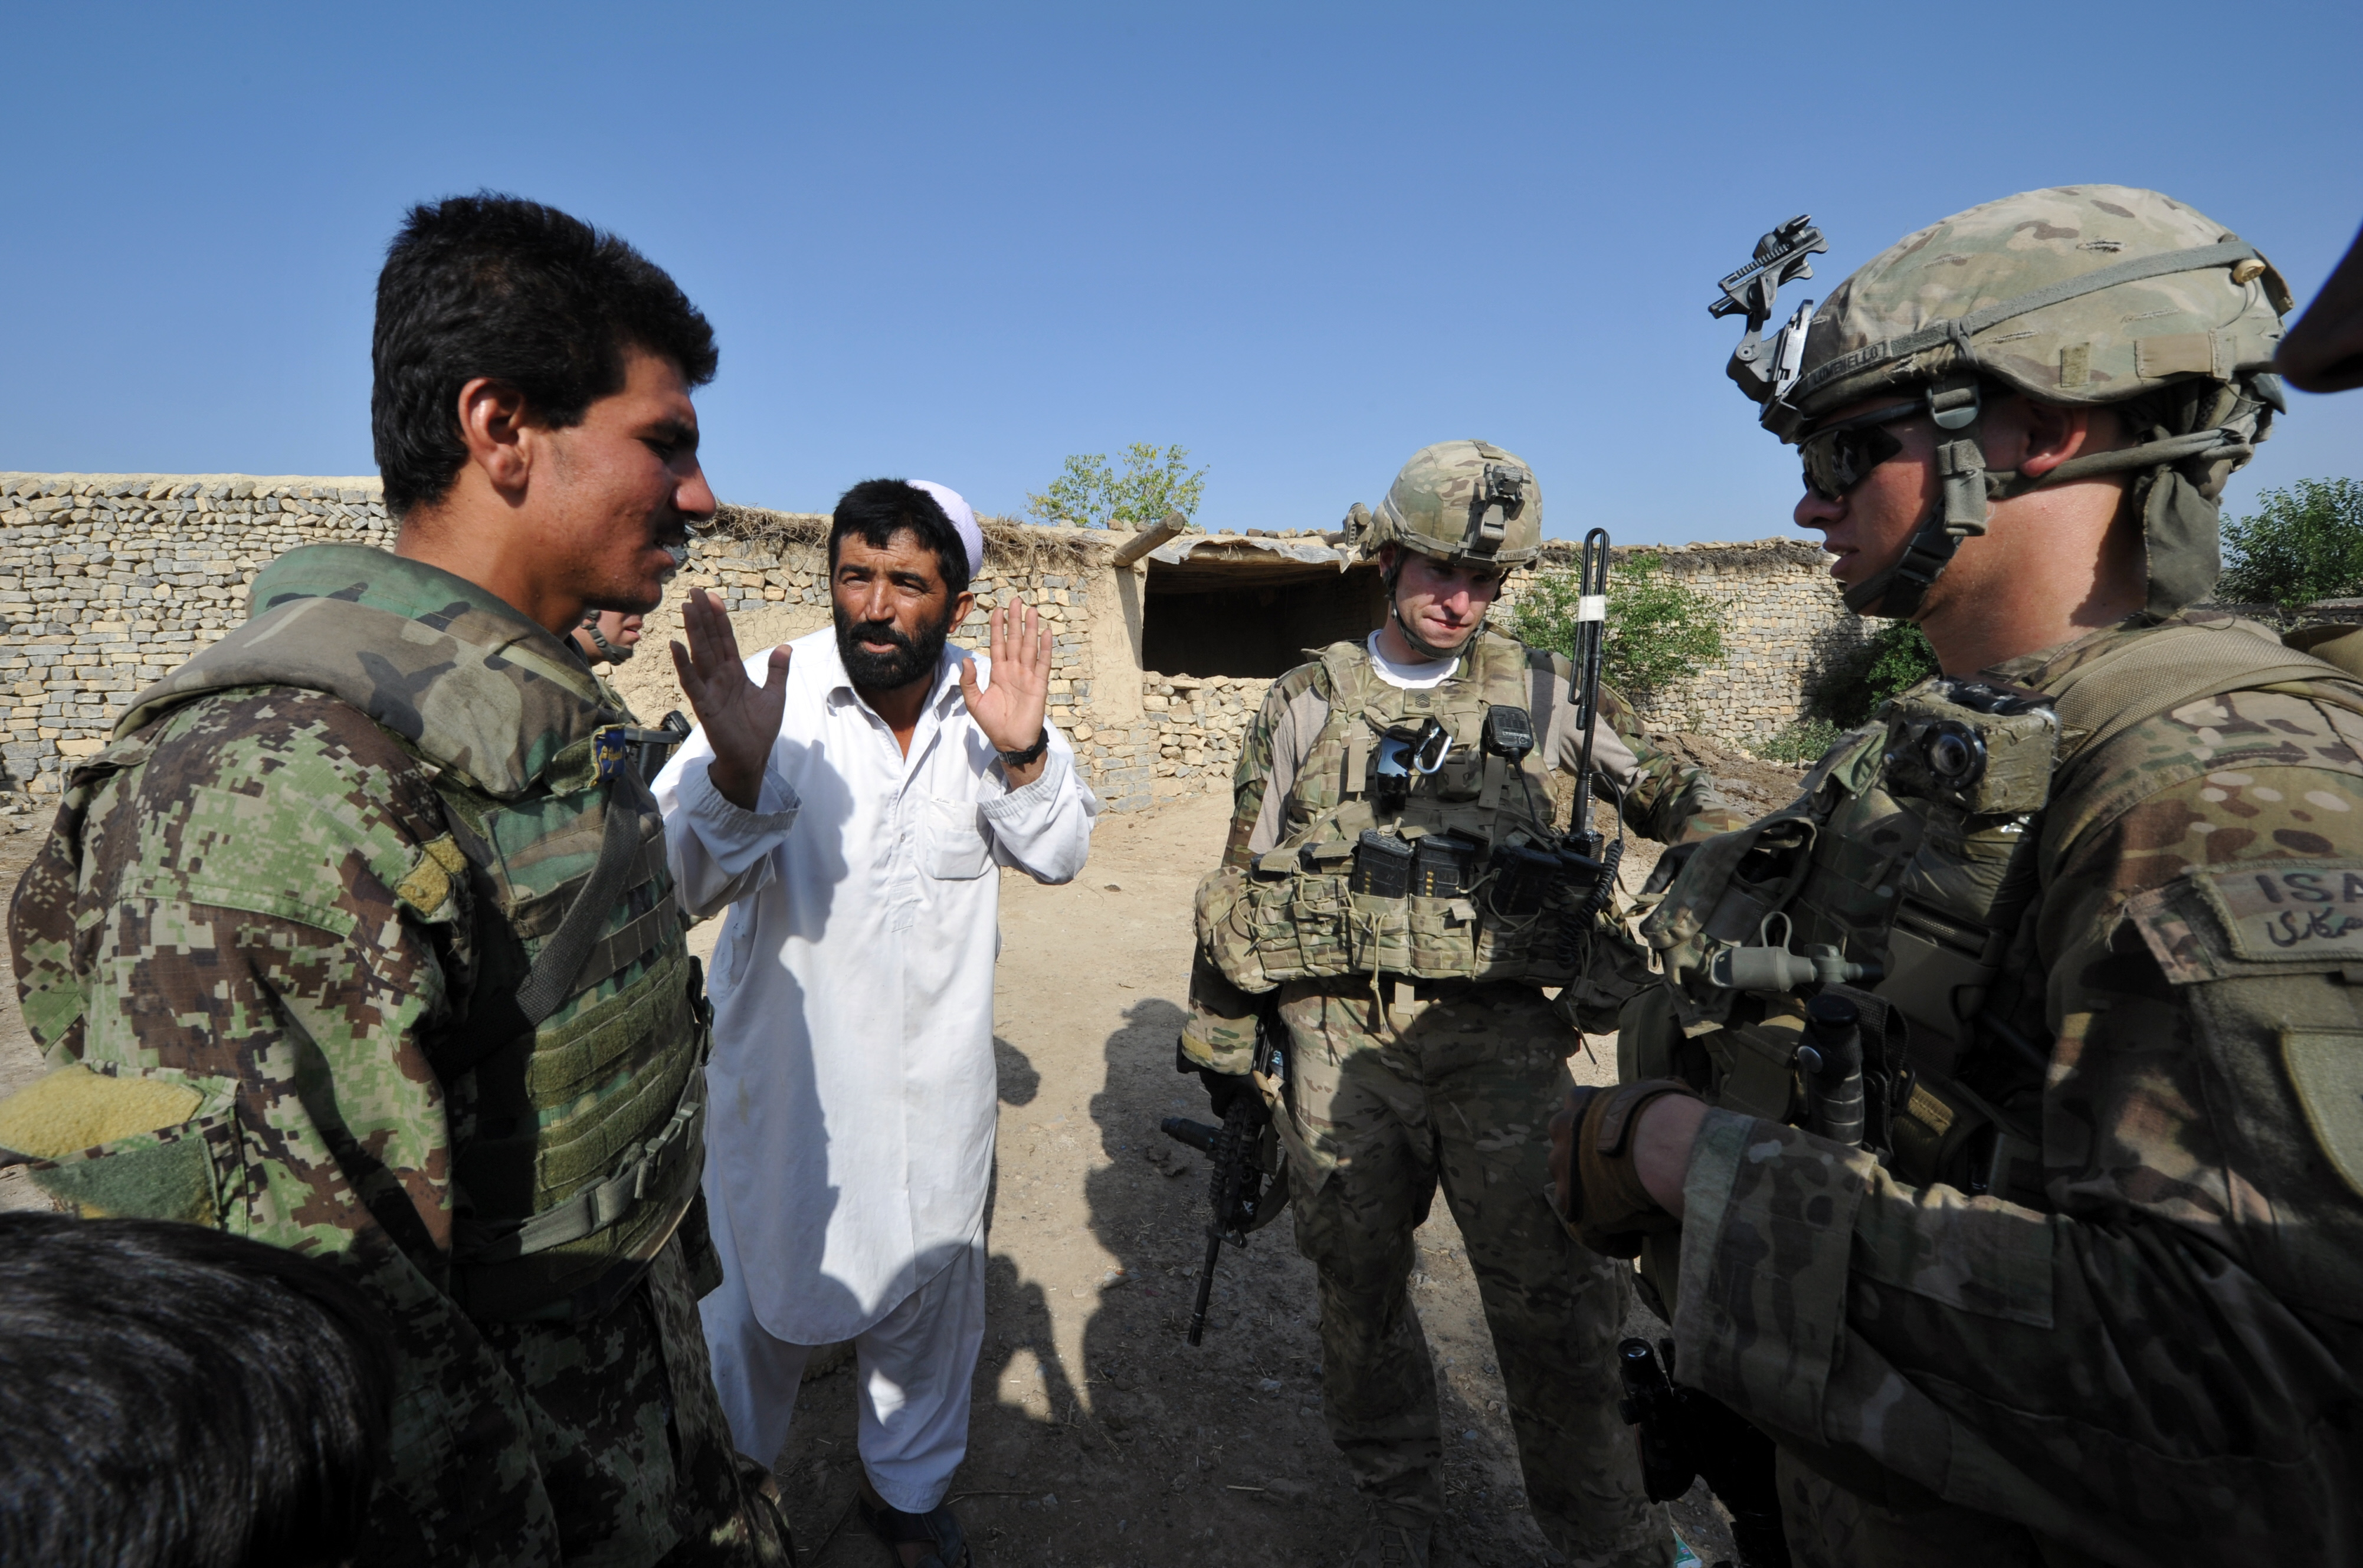 An Afghan soldier (L) serves an interpreter as a civilian talks to U.S. soldiers from Viper Company (Bravo), 1-26 Infantry during a patrol at a village near Combat Outpost (COP) Sabari in Khost province in eastern Afghanistan June 19, 2011. (TED ALJIBE/AFP/Getty Images)